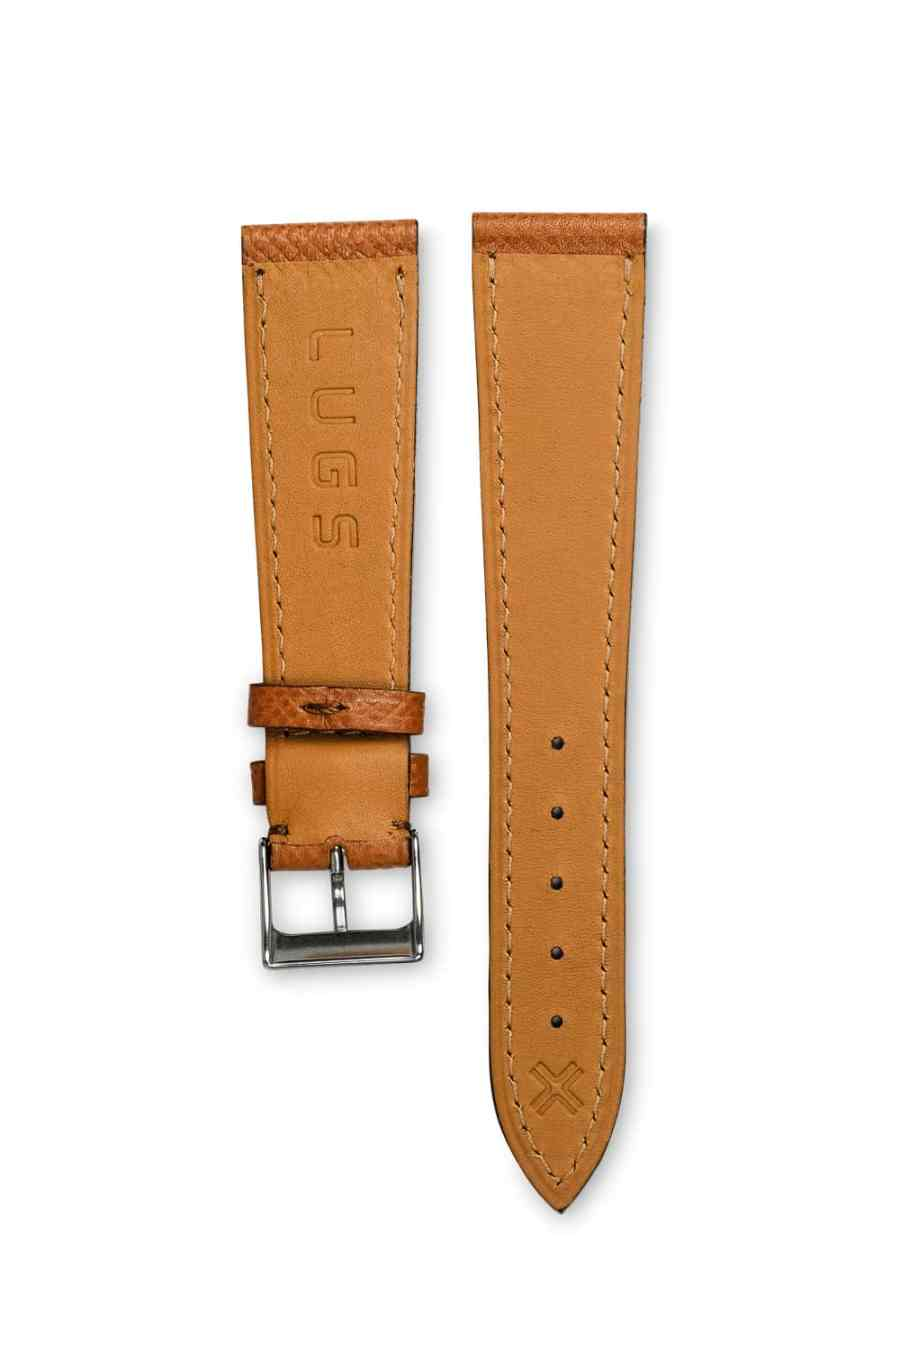 Grained light brown tan leather watch strap - tone on tone stitching - LUGS brand